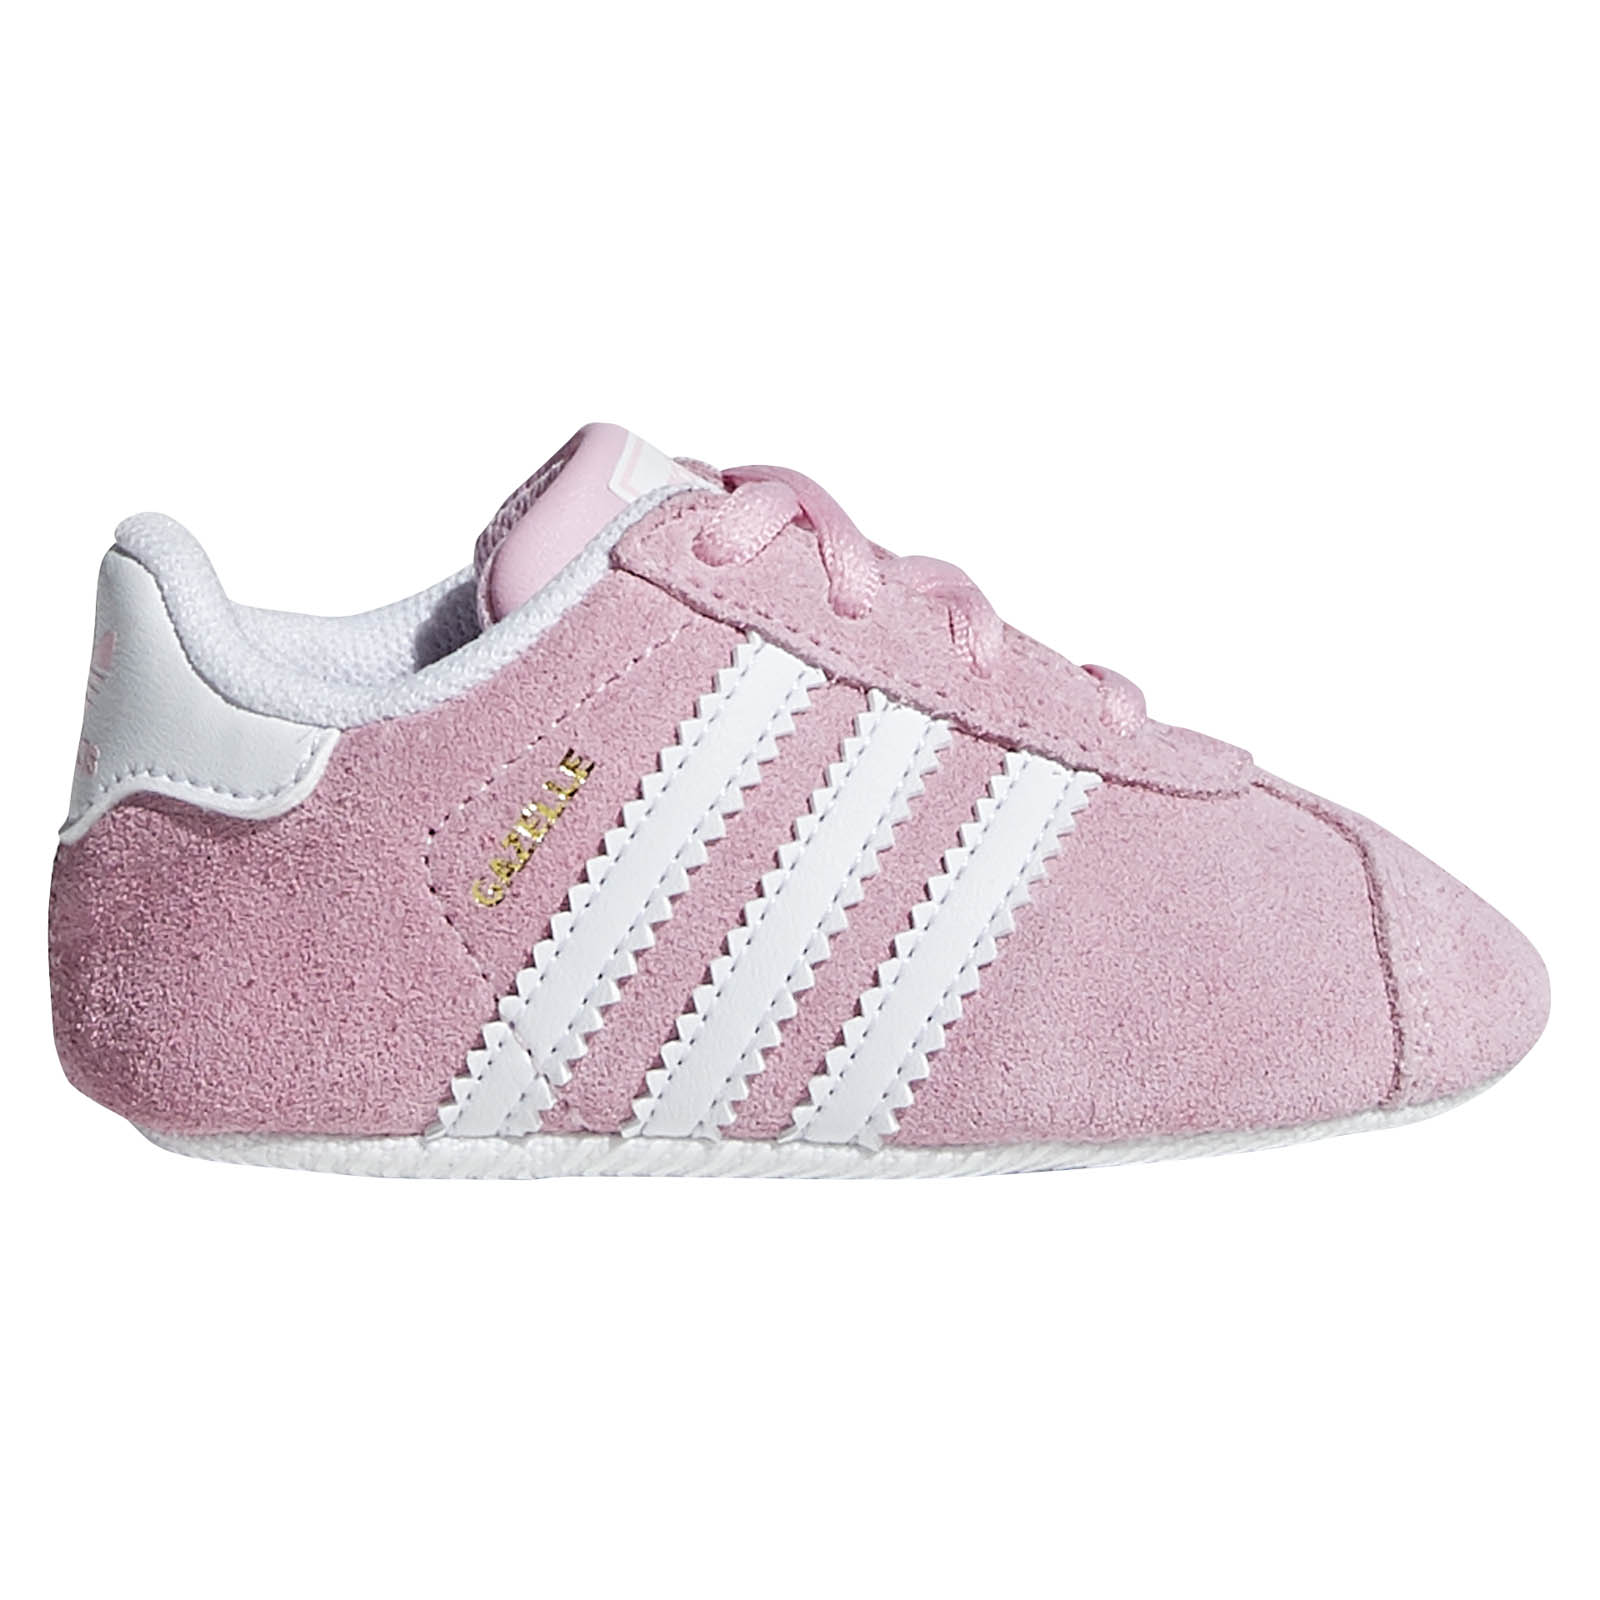 Adidas Originals Gazelle Crib - Sneakers  7c6a25172f2